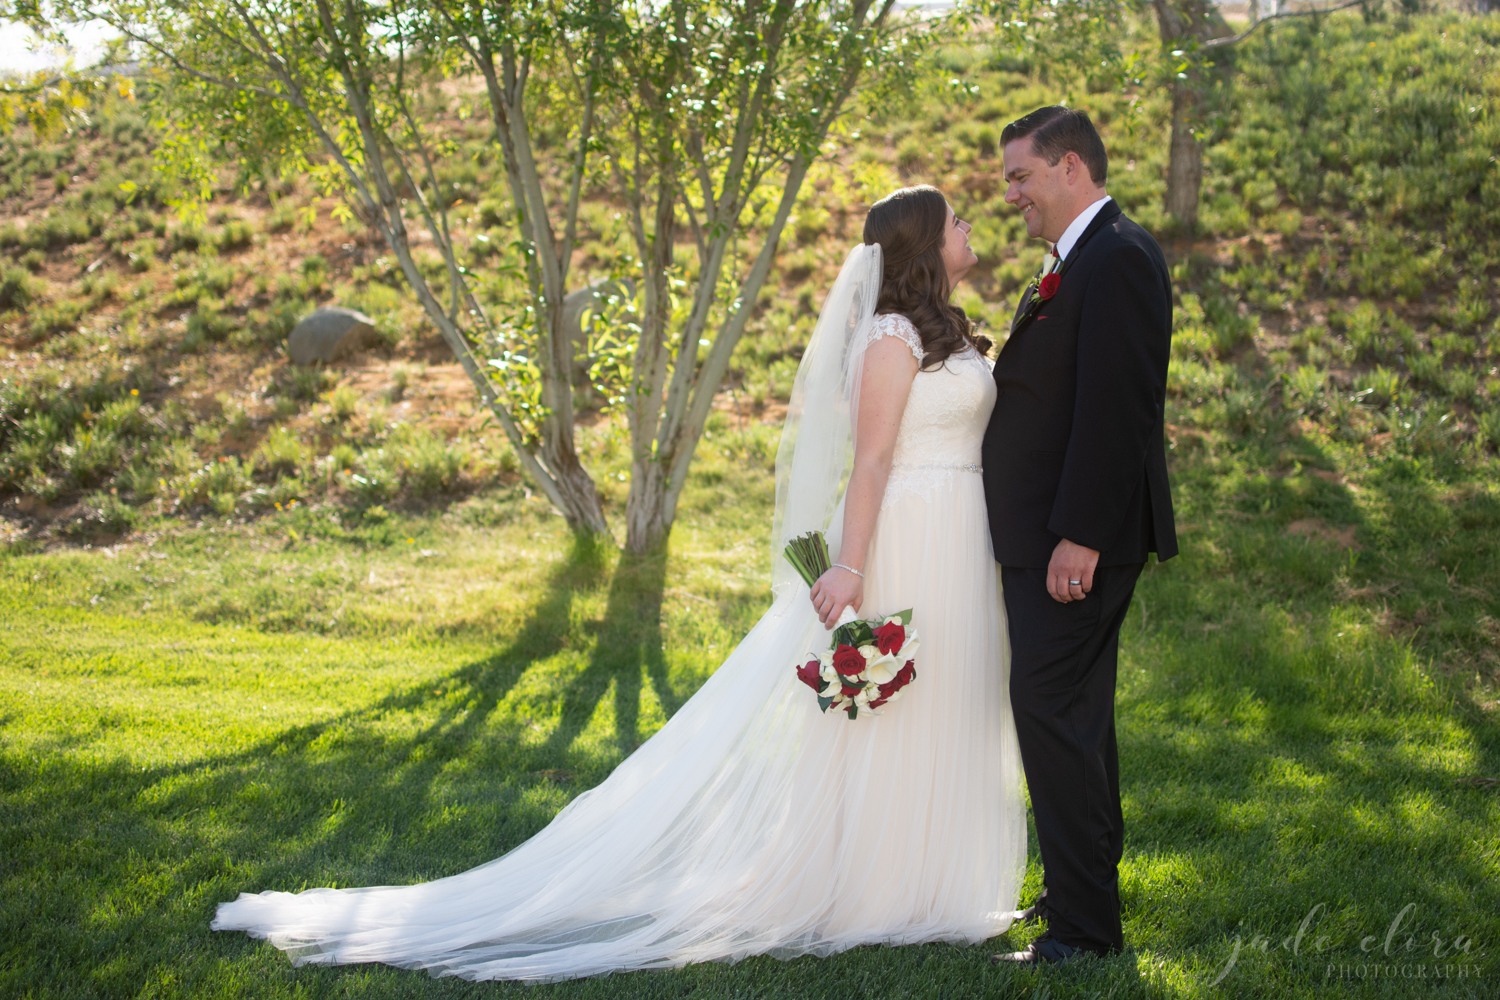 Glendale-Wedding-Photographer-Blog-Jade-Elora-078-2.jpg